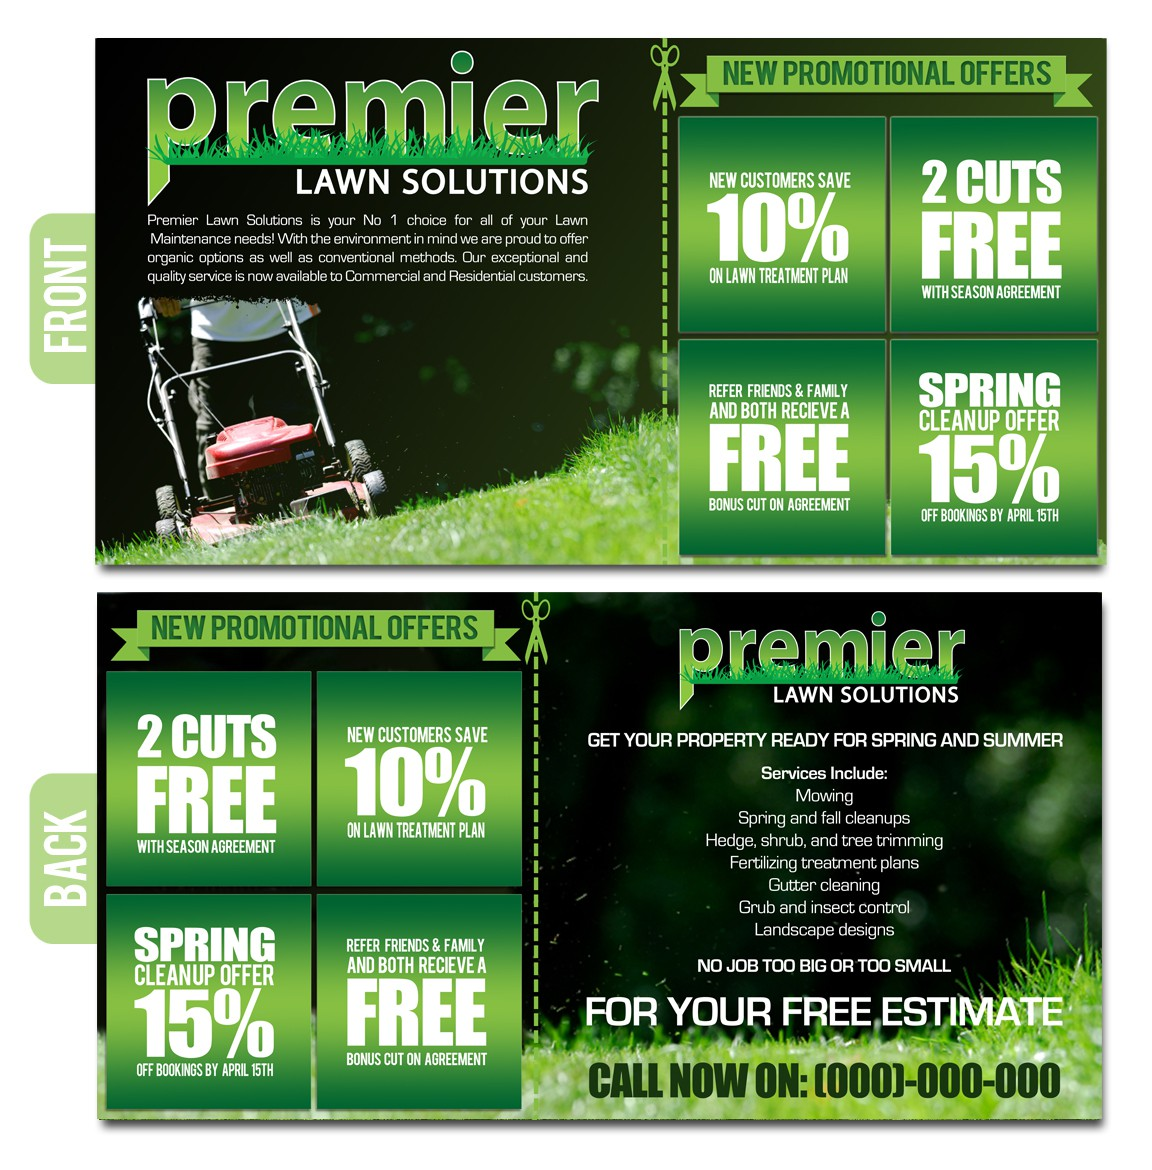 Help premier lawn solutions market with a new postcard !!!!!!